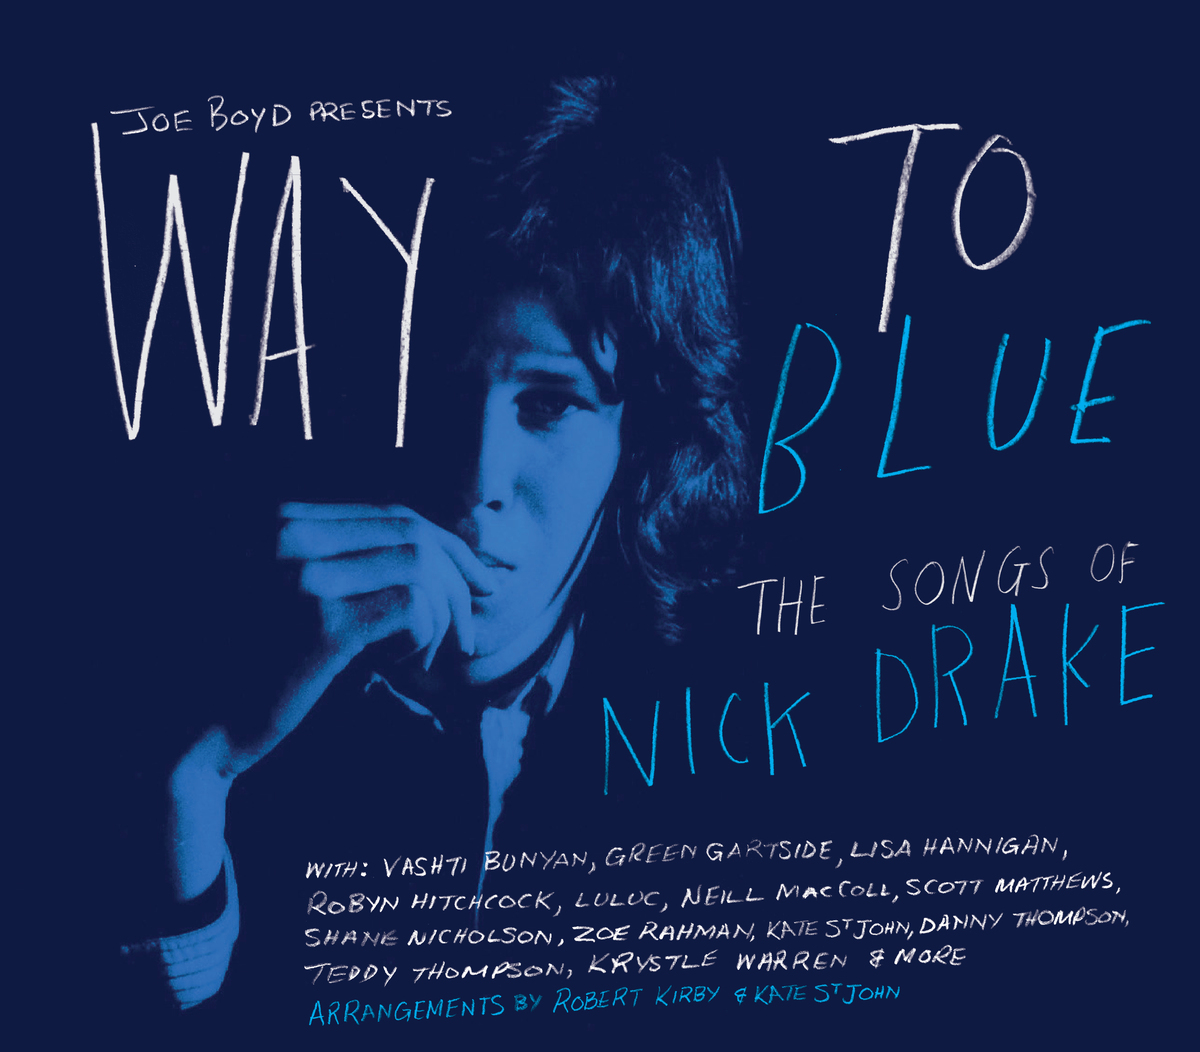 What The Nick Drake Tribute Album Taught Me About Art And